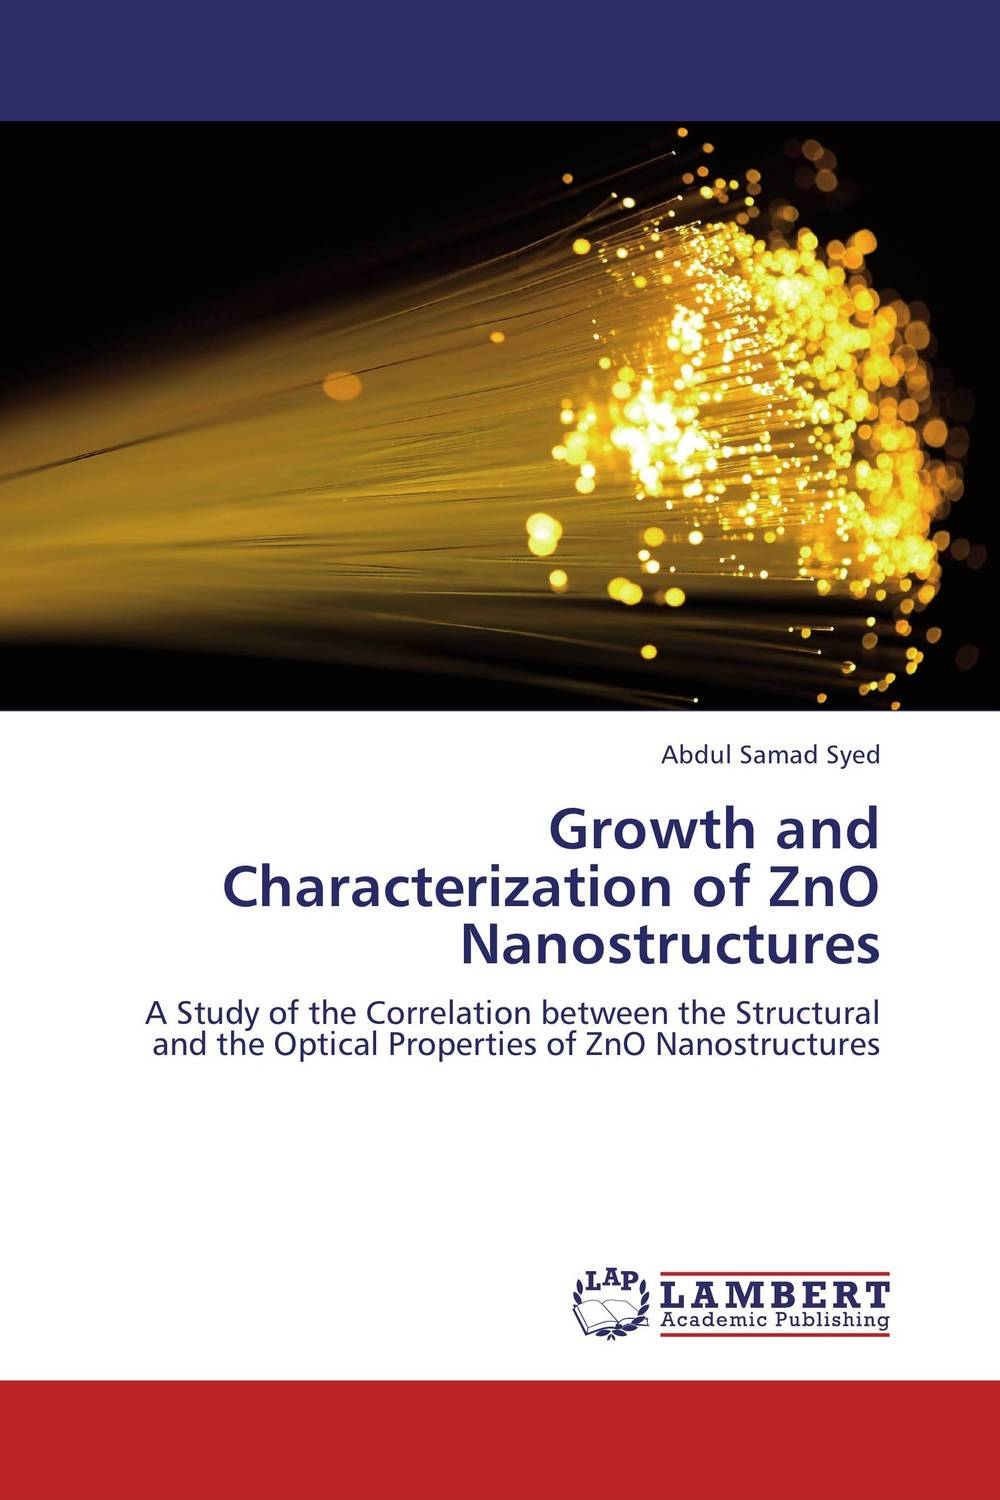 Growth and Characterization of ZnO Nanostructures zno cds core shells optical sensor fabrication using chemical method